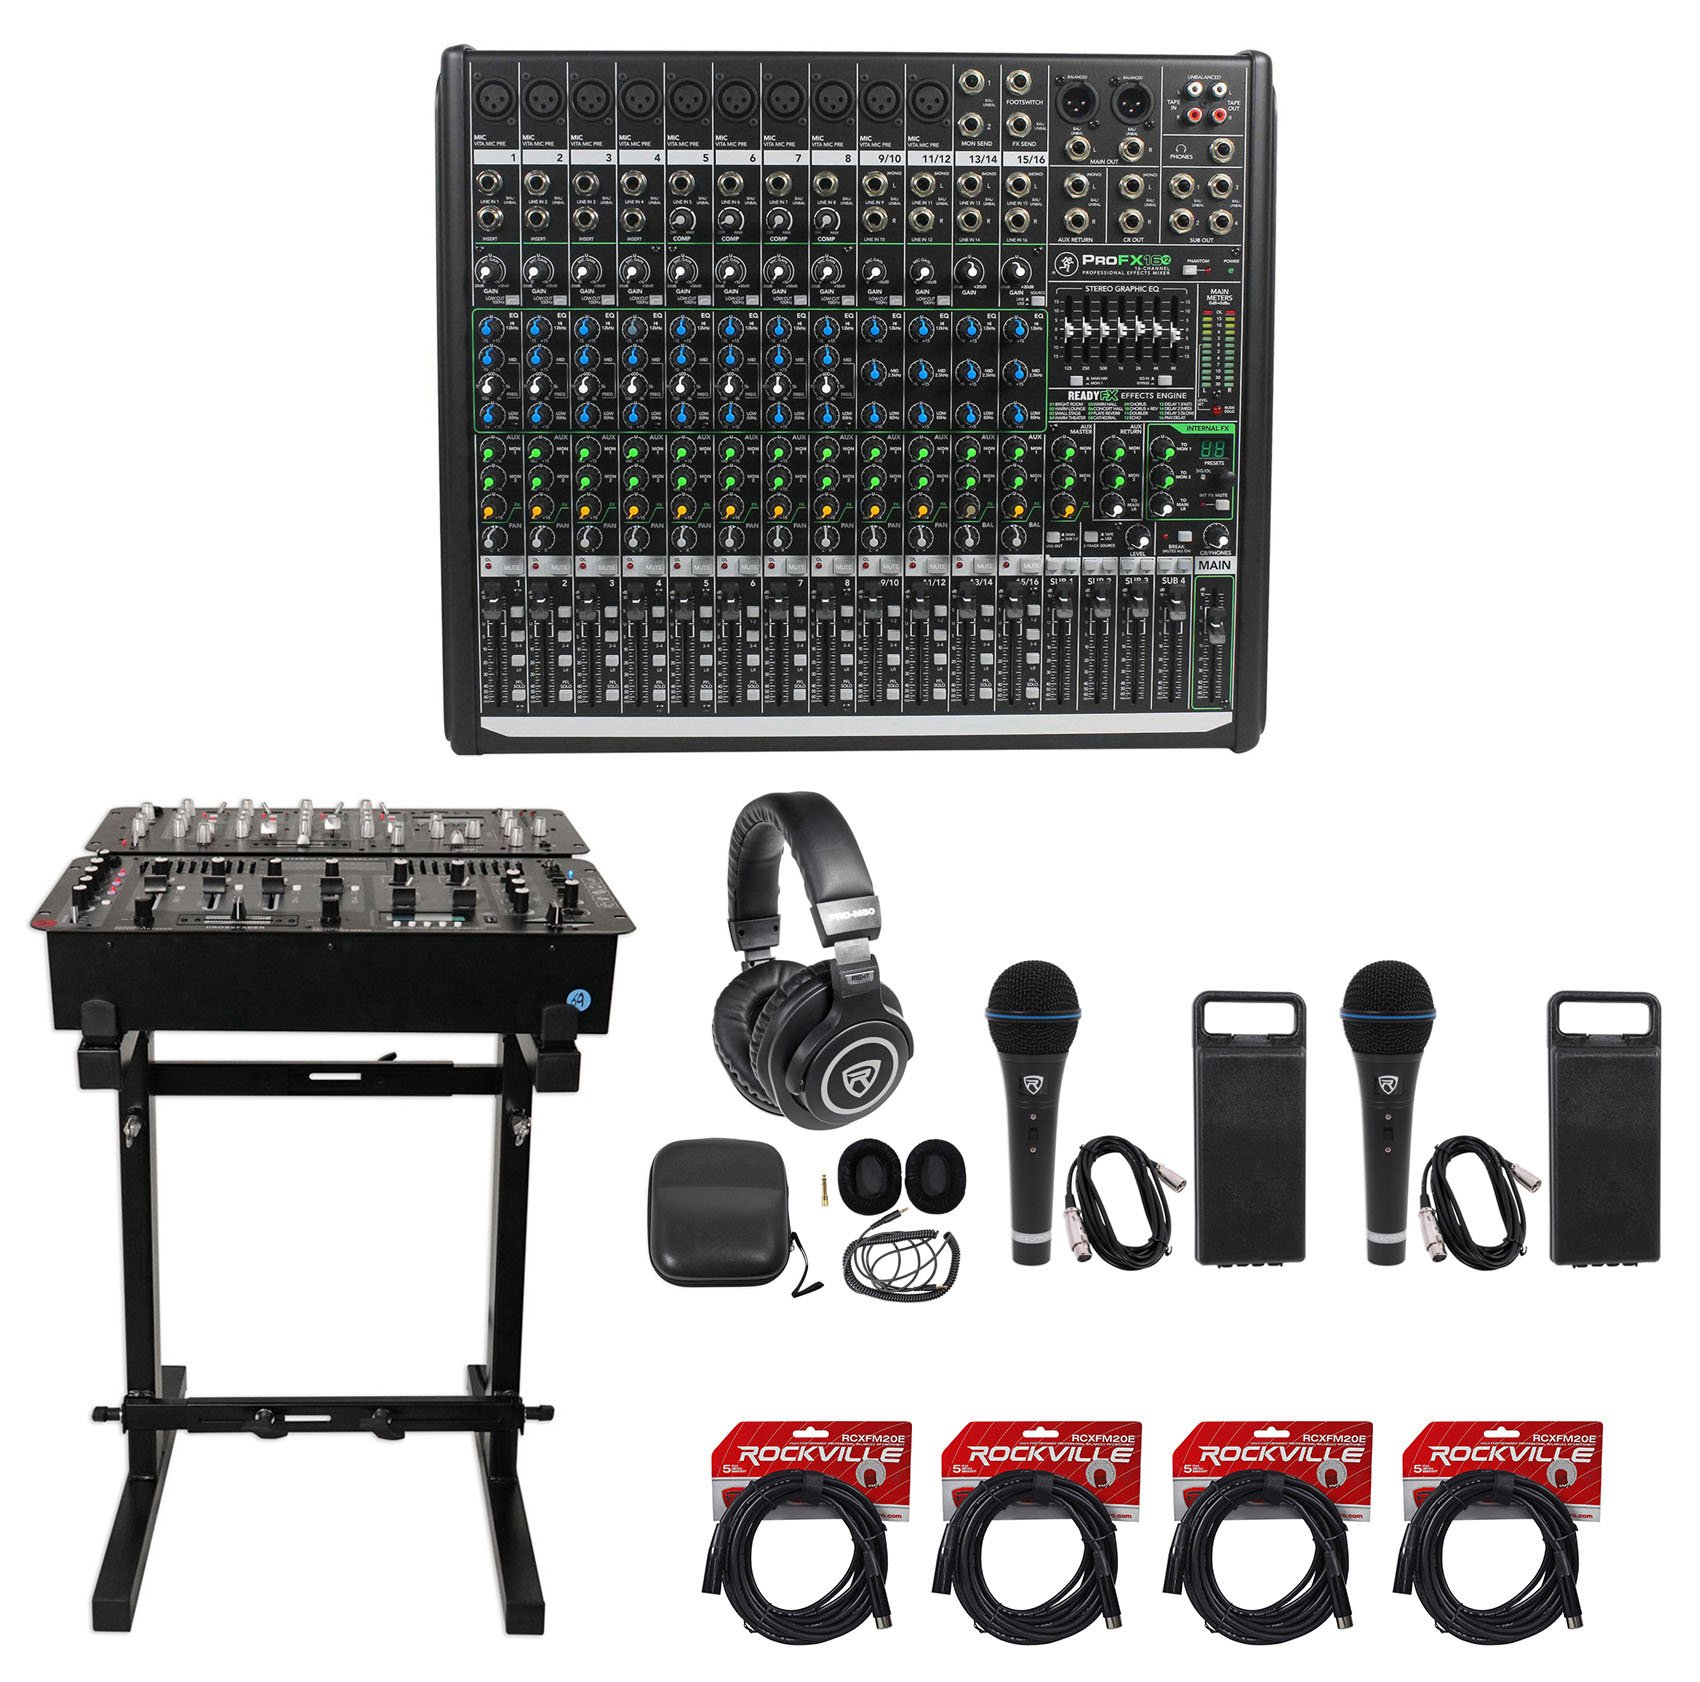 Mackie PROFX16v2 Pro 16 Channel 4 Bus Mixer w Effects and USB PROFX16 V2+Stand by Mackie (Image #1)